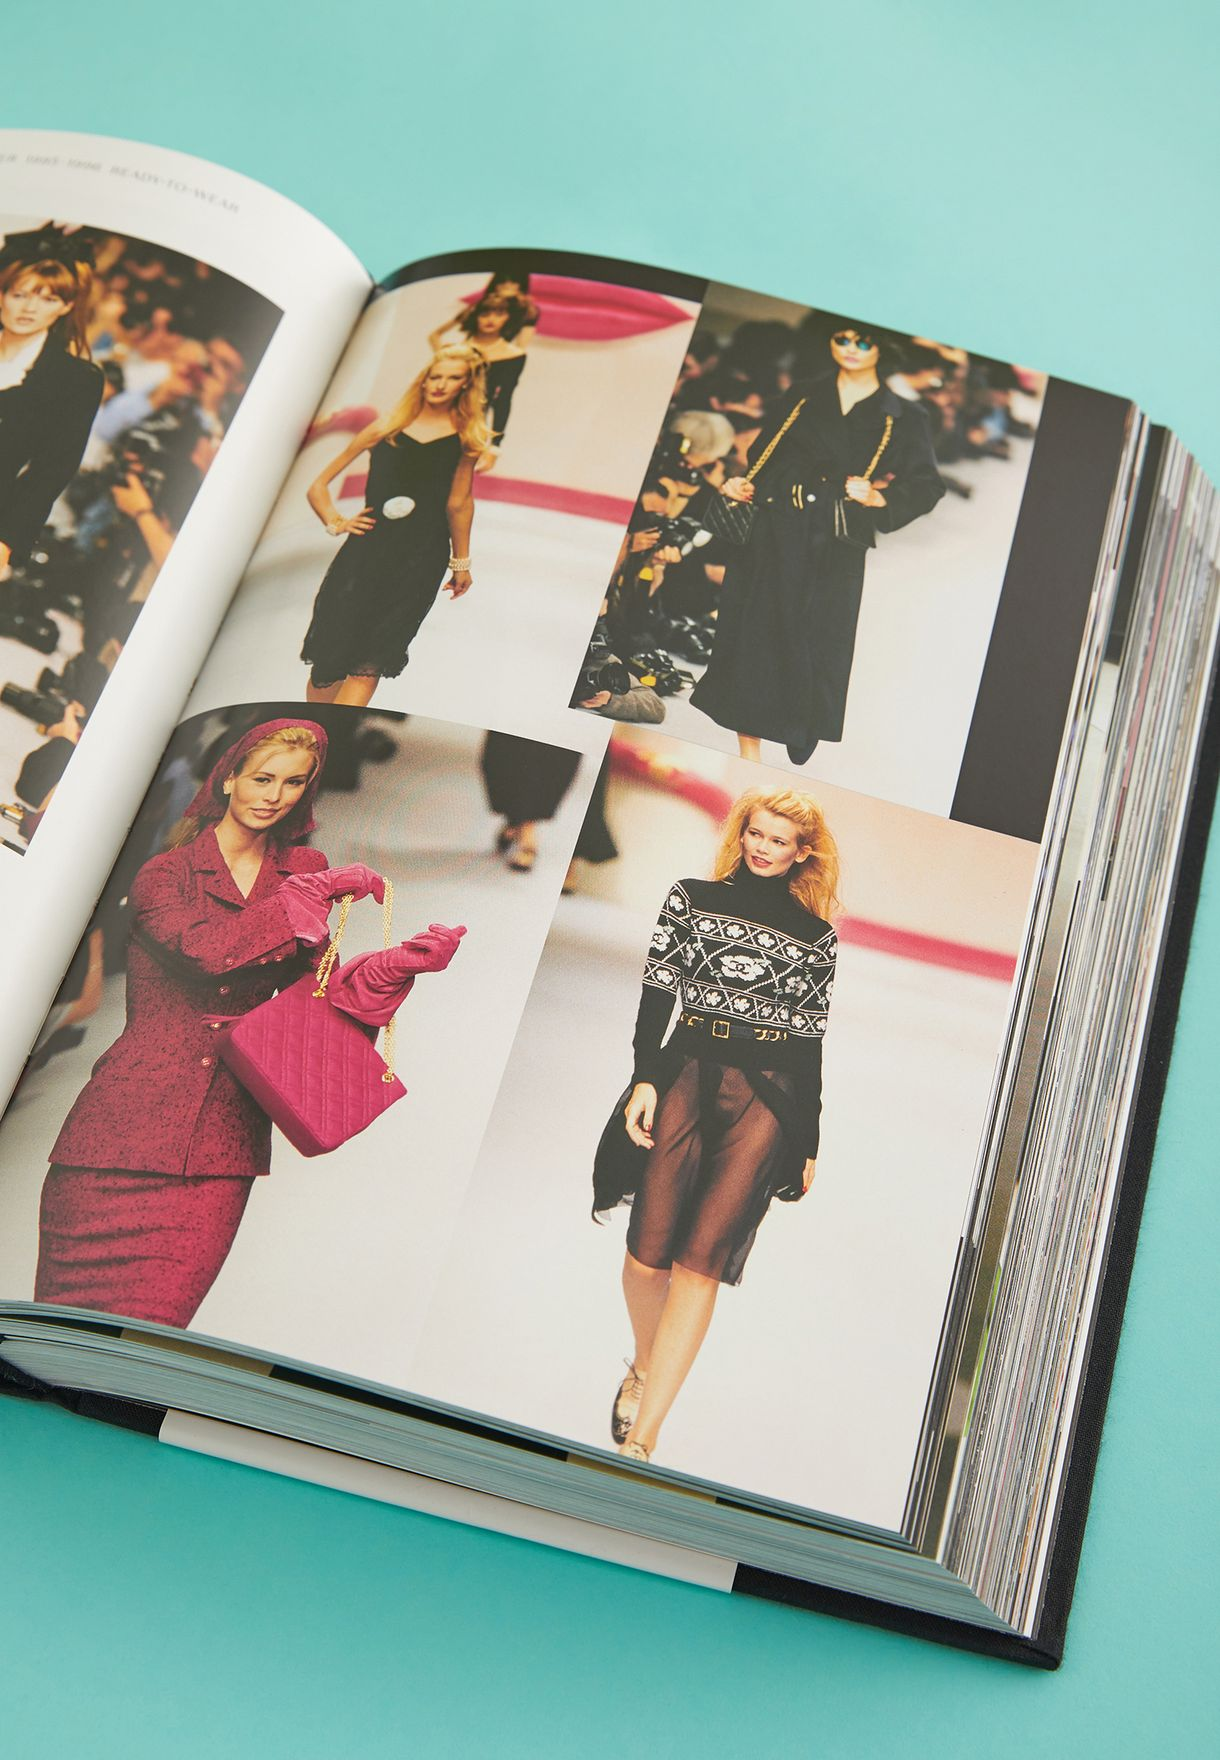 Chanel - Catwalk Karl Lagerfeld Book